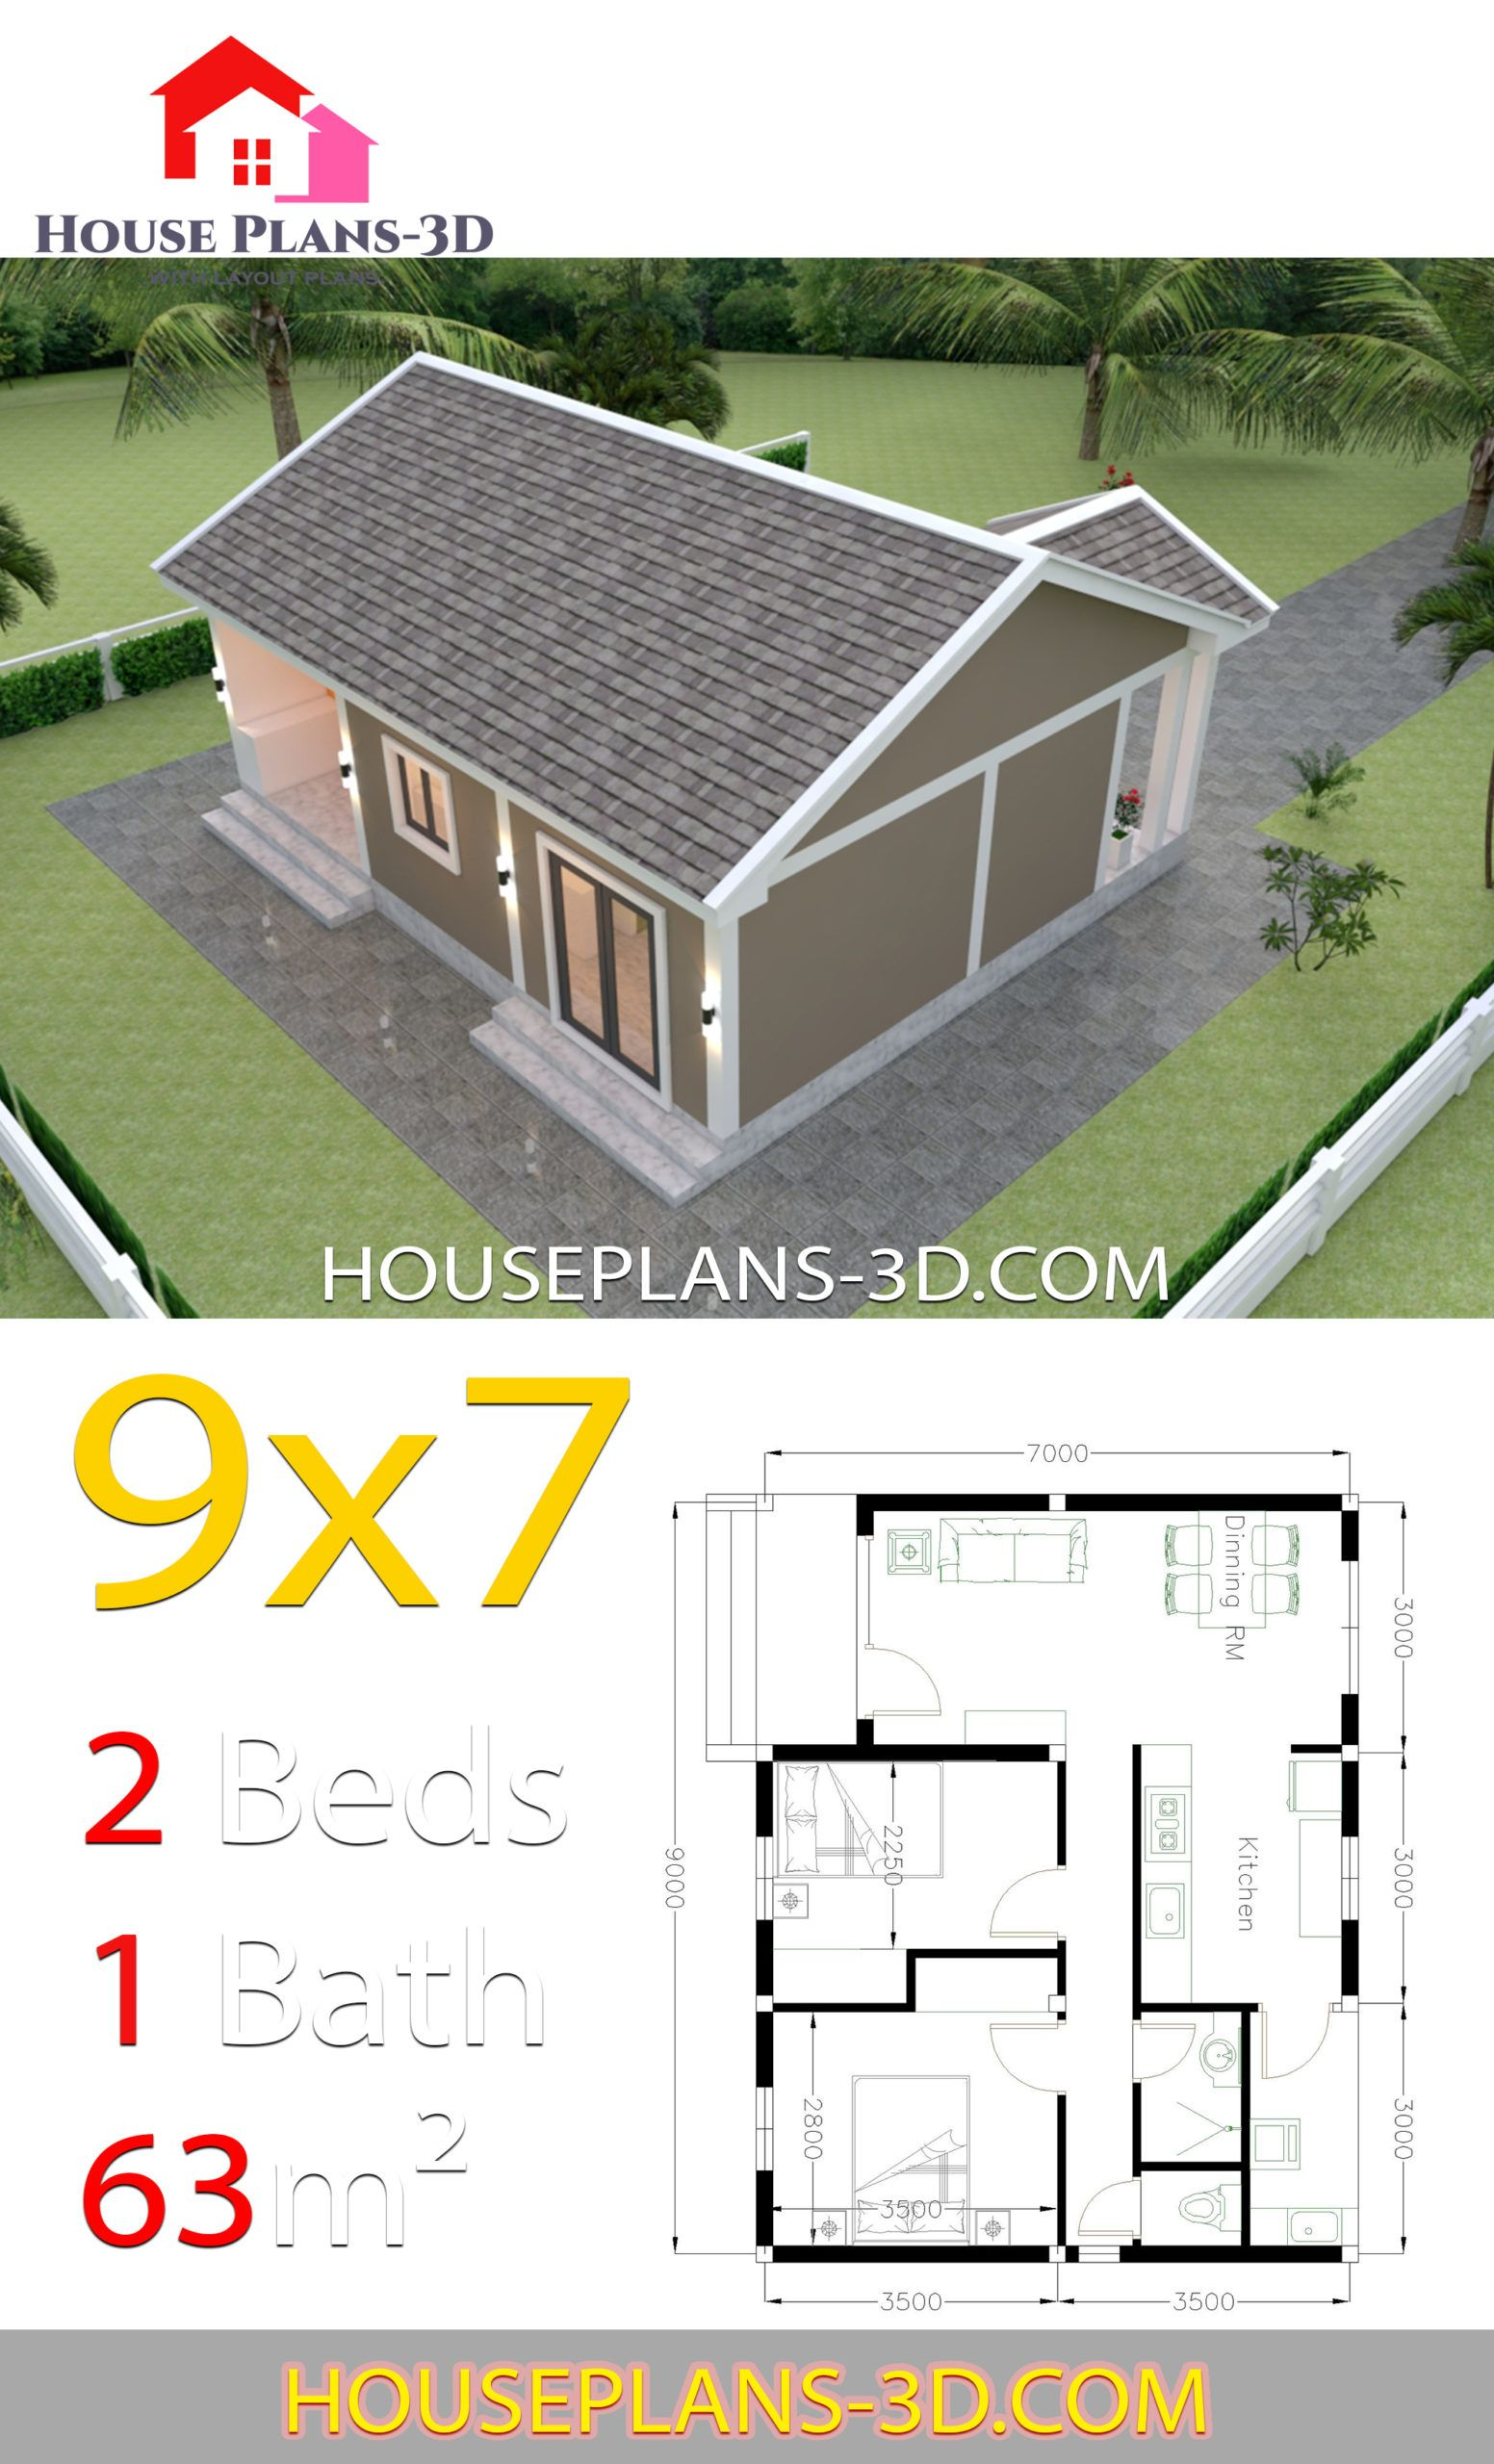 House Plans 9x7 With 2 Bedrooms Gable Roof House Plans 3d House Plan Gallery Small House Design Plans House Layouts